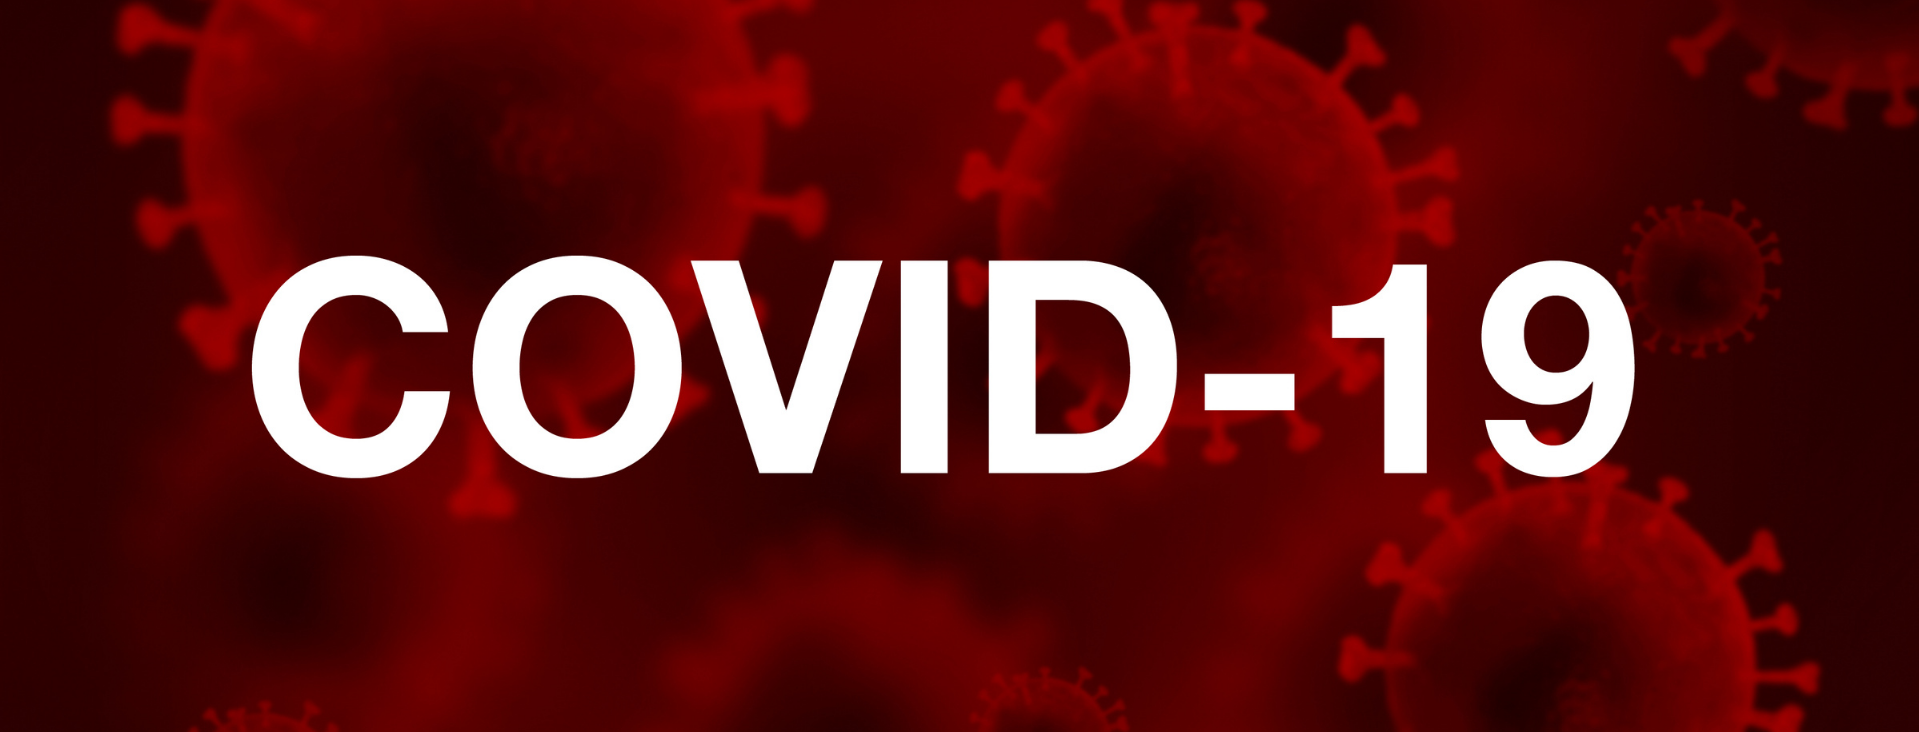 Image of the covid-19 virus, with the word Covid-19 written on it.